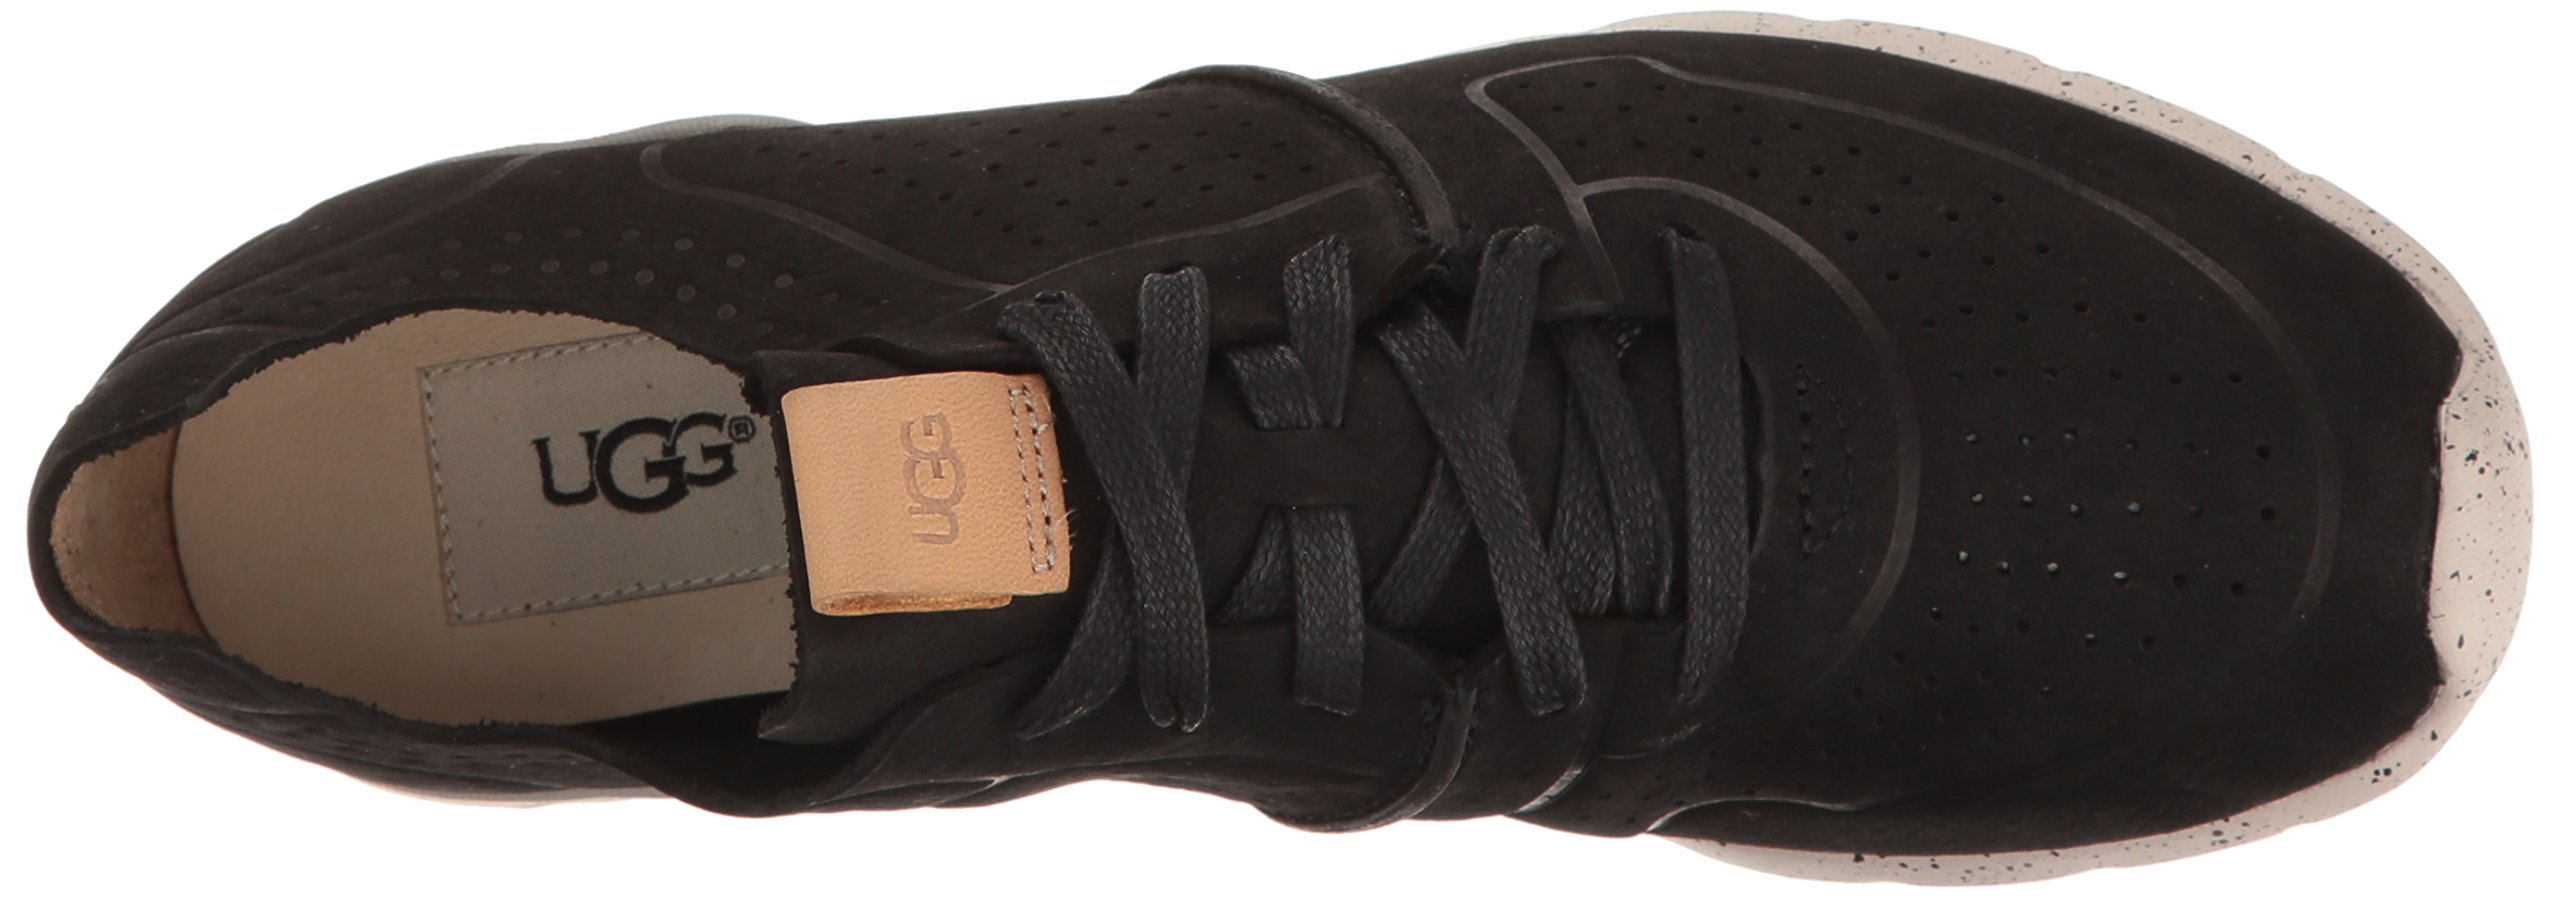 UGG Women's Tye Fashion Sneaker, Black, 8.5 US/8.5 B US by UGG (Image #8)